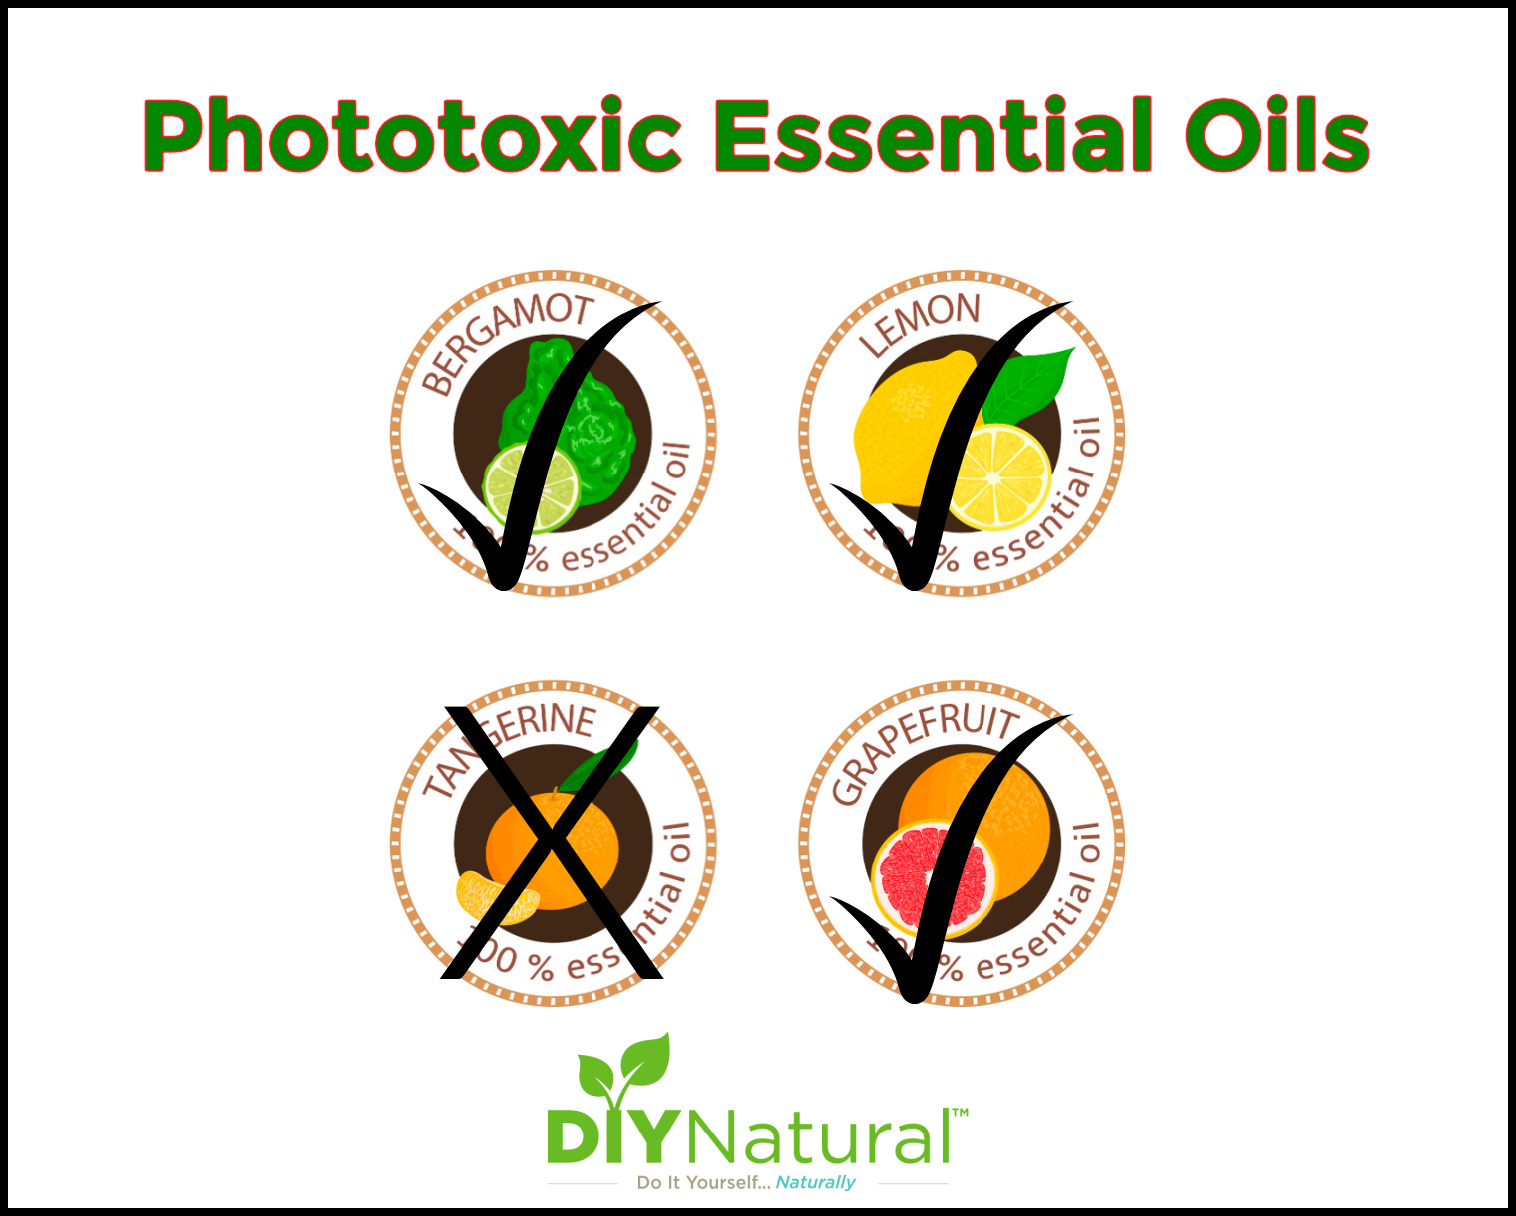 Photoxicity in Citrus Oils and Other Essential Oils